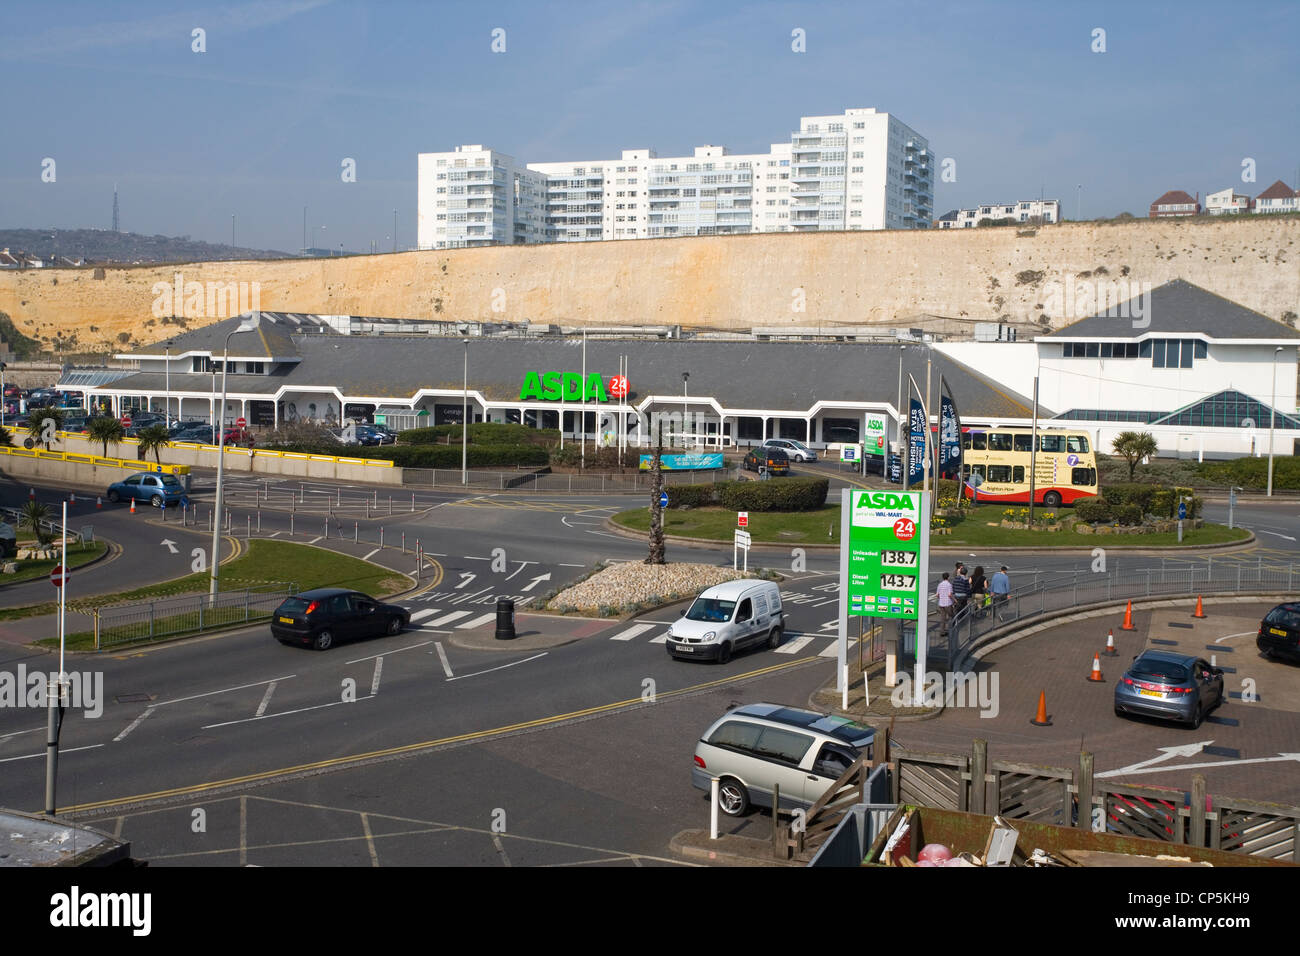 asda superstore at brighton marina in east sussex - Stock Image